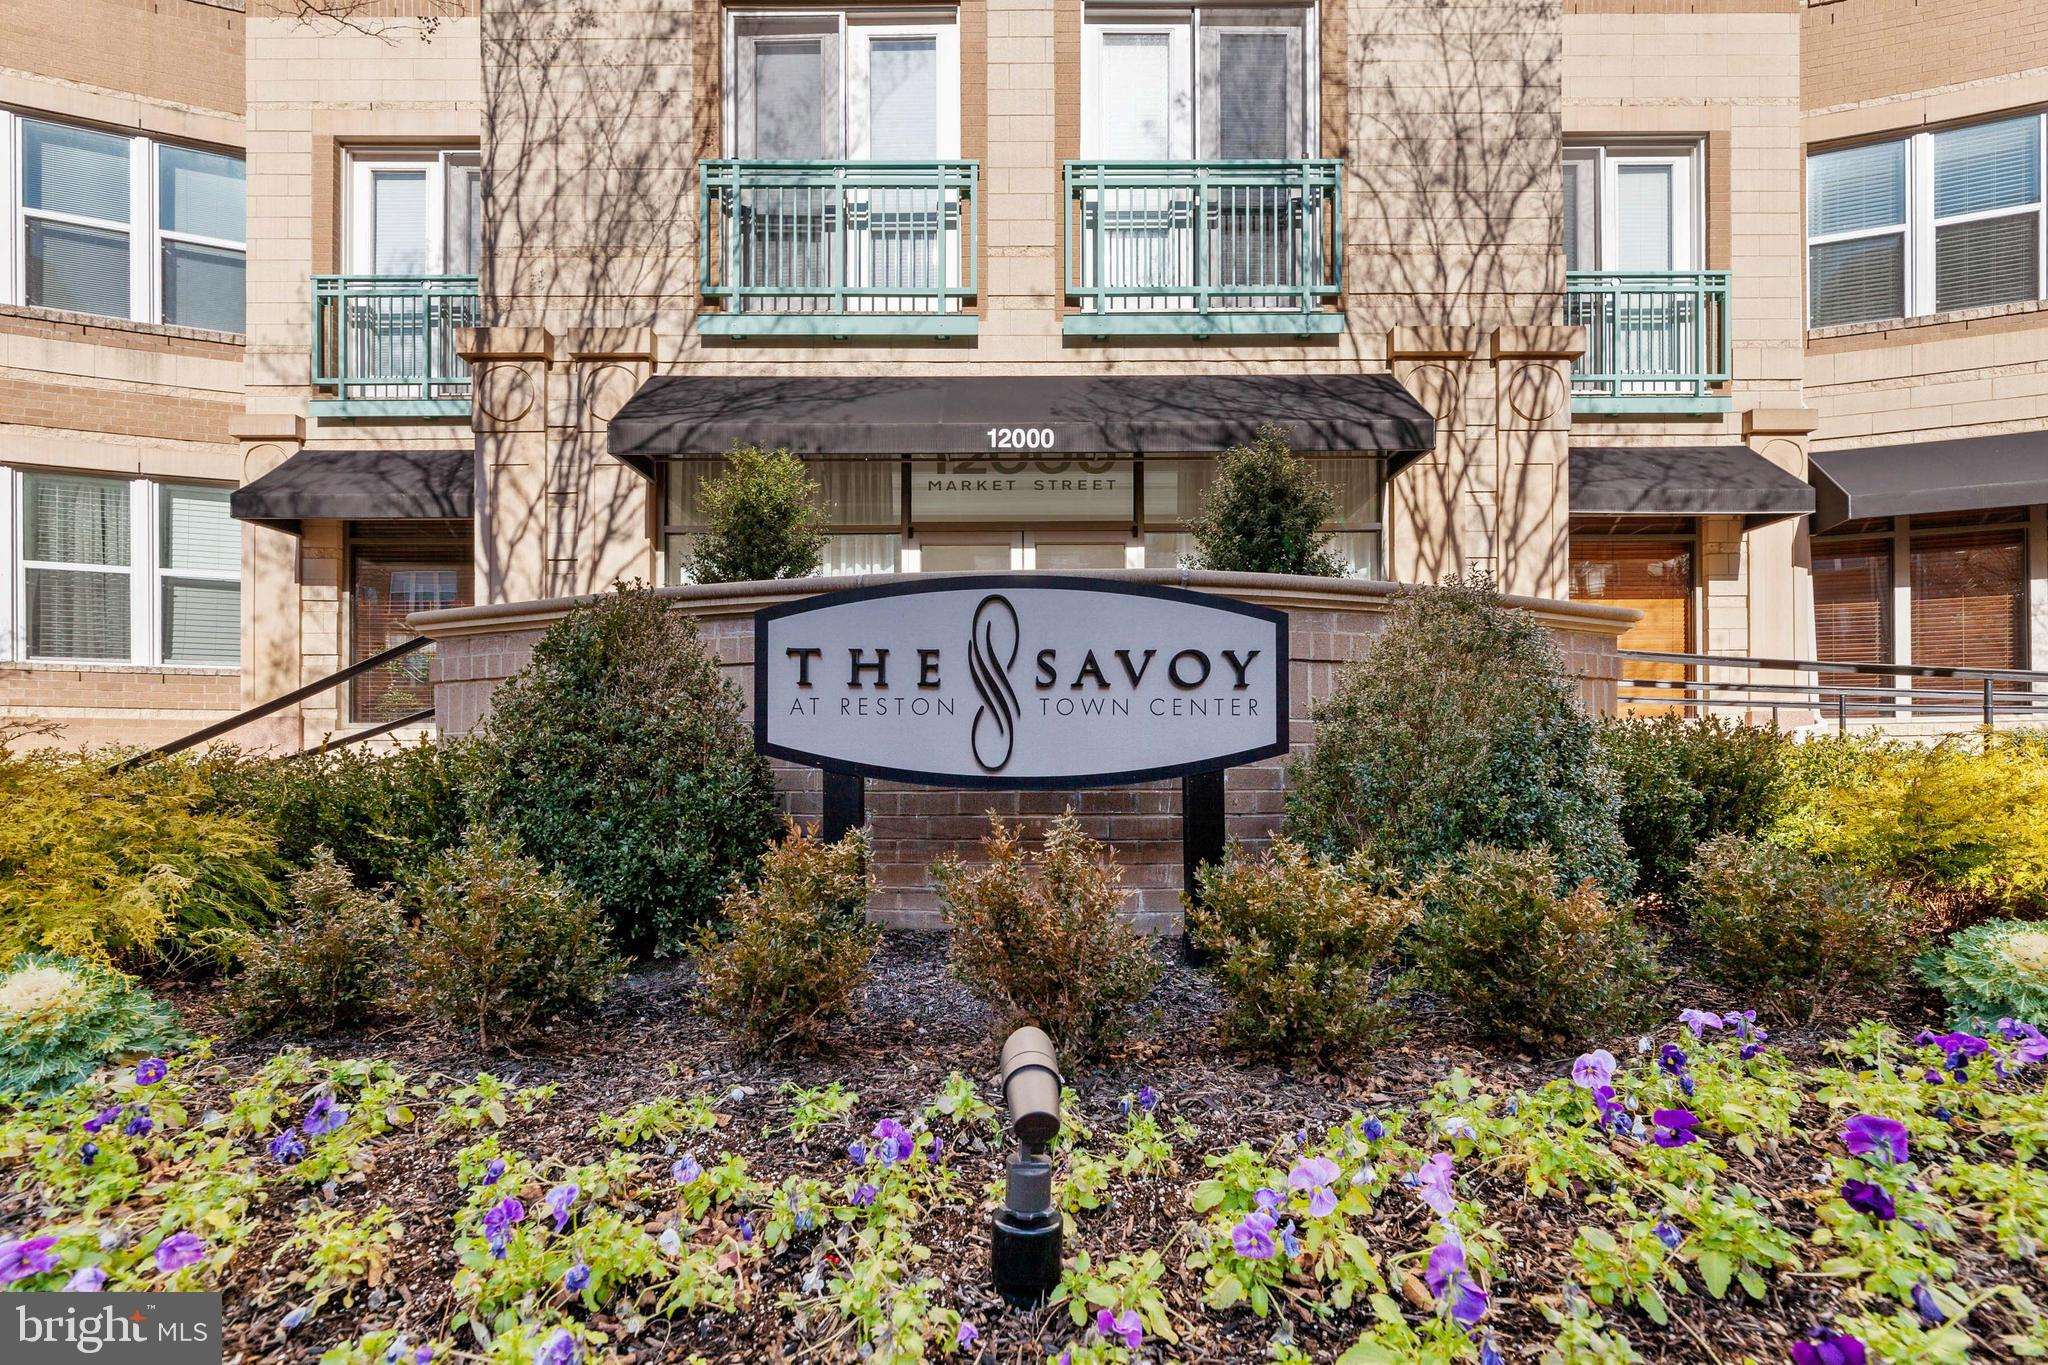 Live in the middle of Reston Town Center with shops, restaurants, and entertainment just steps away.